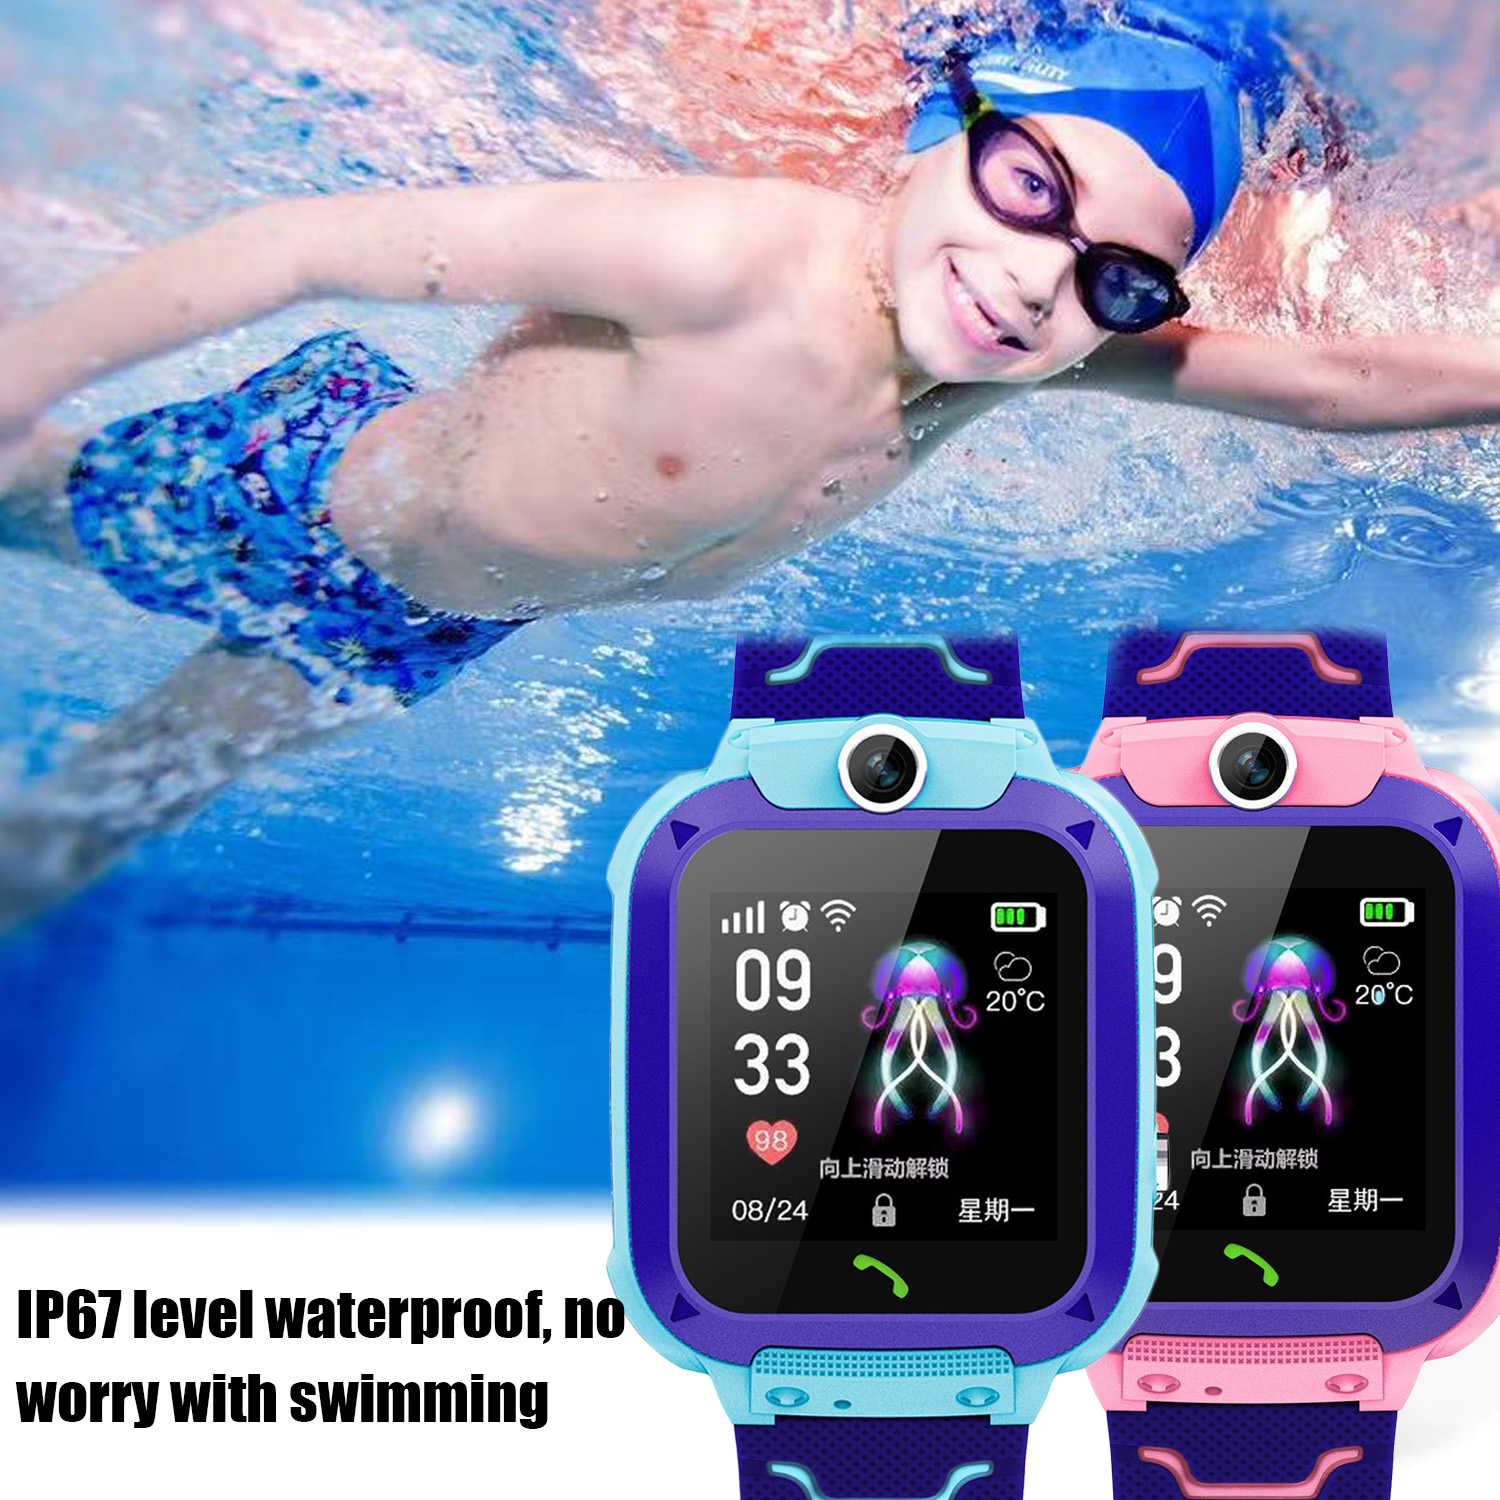 Multifunction Waterproof Anti-lost Smart Watch Smartwatch Phone Tracker Locater Real-time Monitor For Kids Children Boys Girls